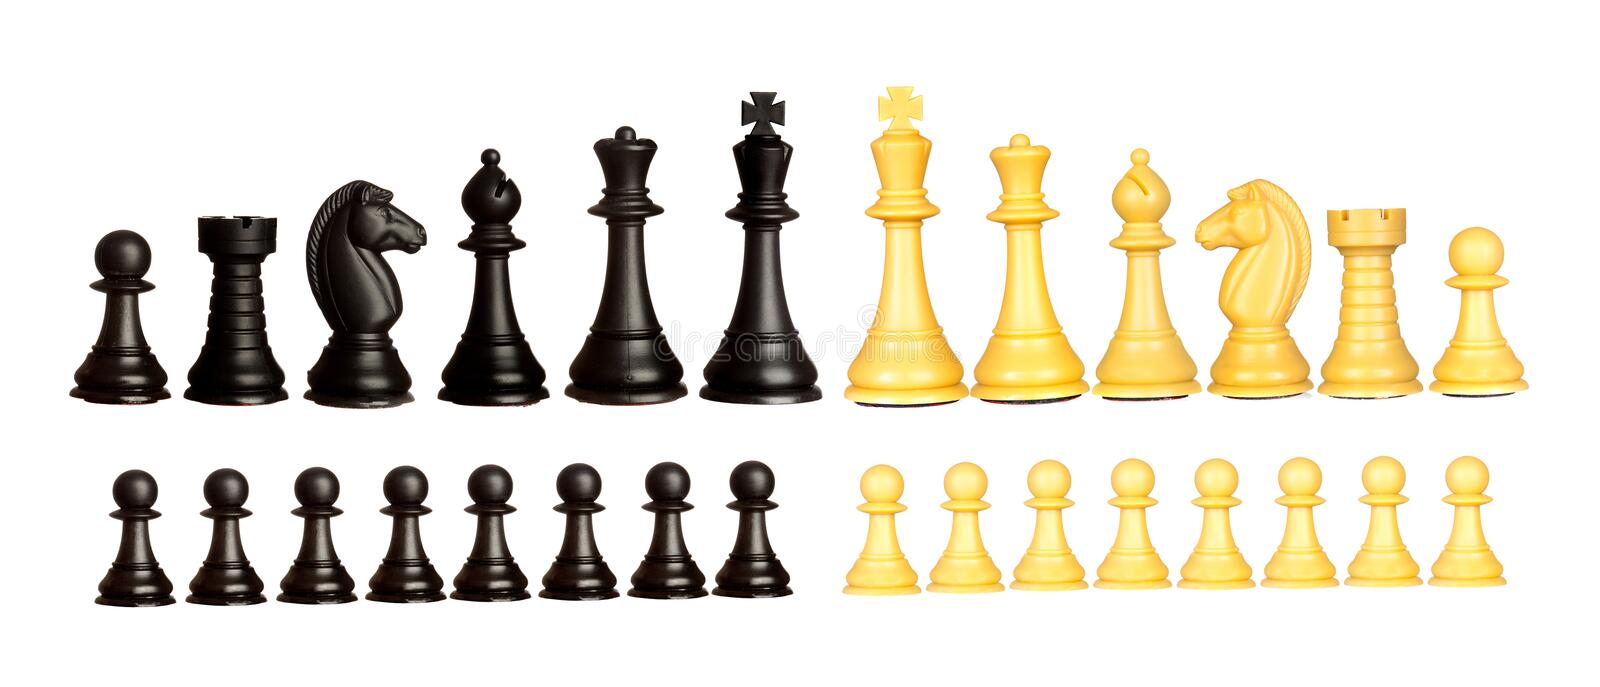 Two teams of the chess. Isolated on a white background stock images